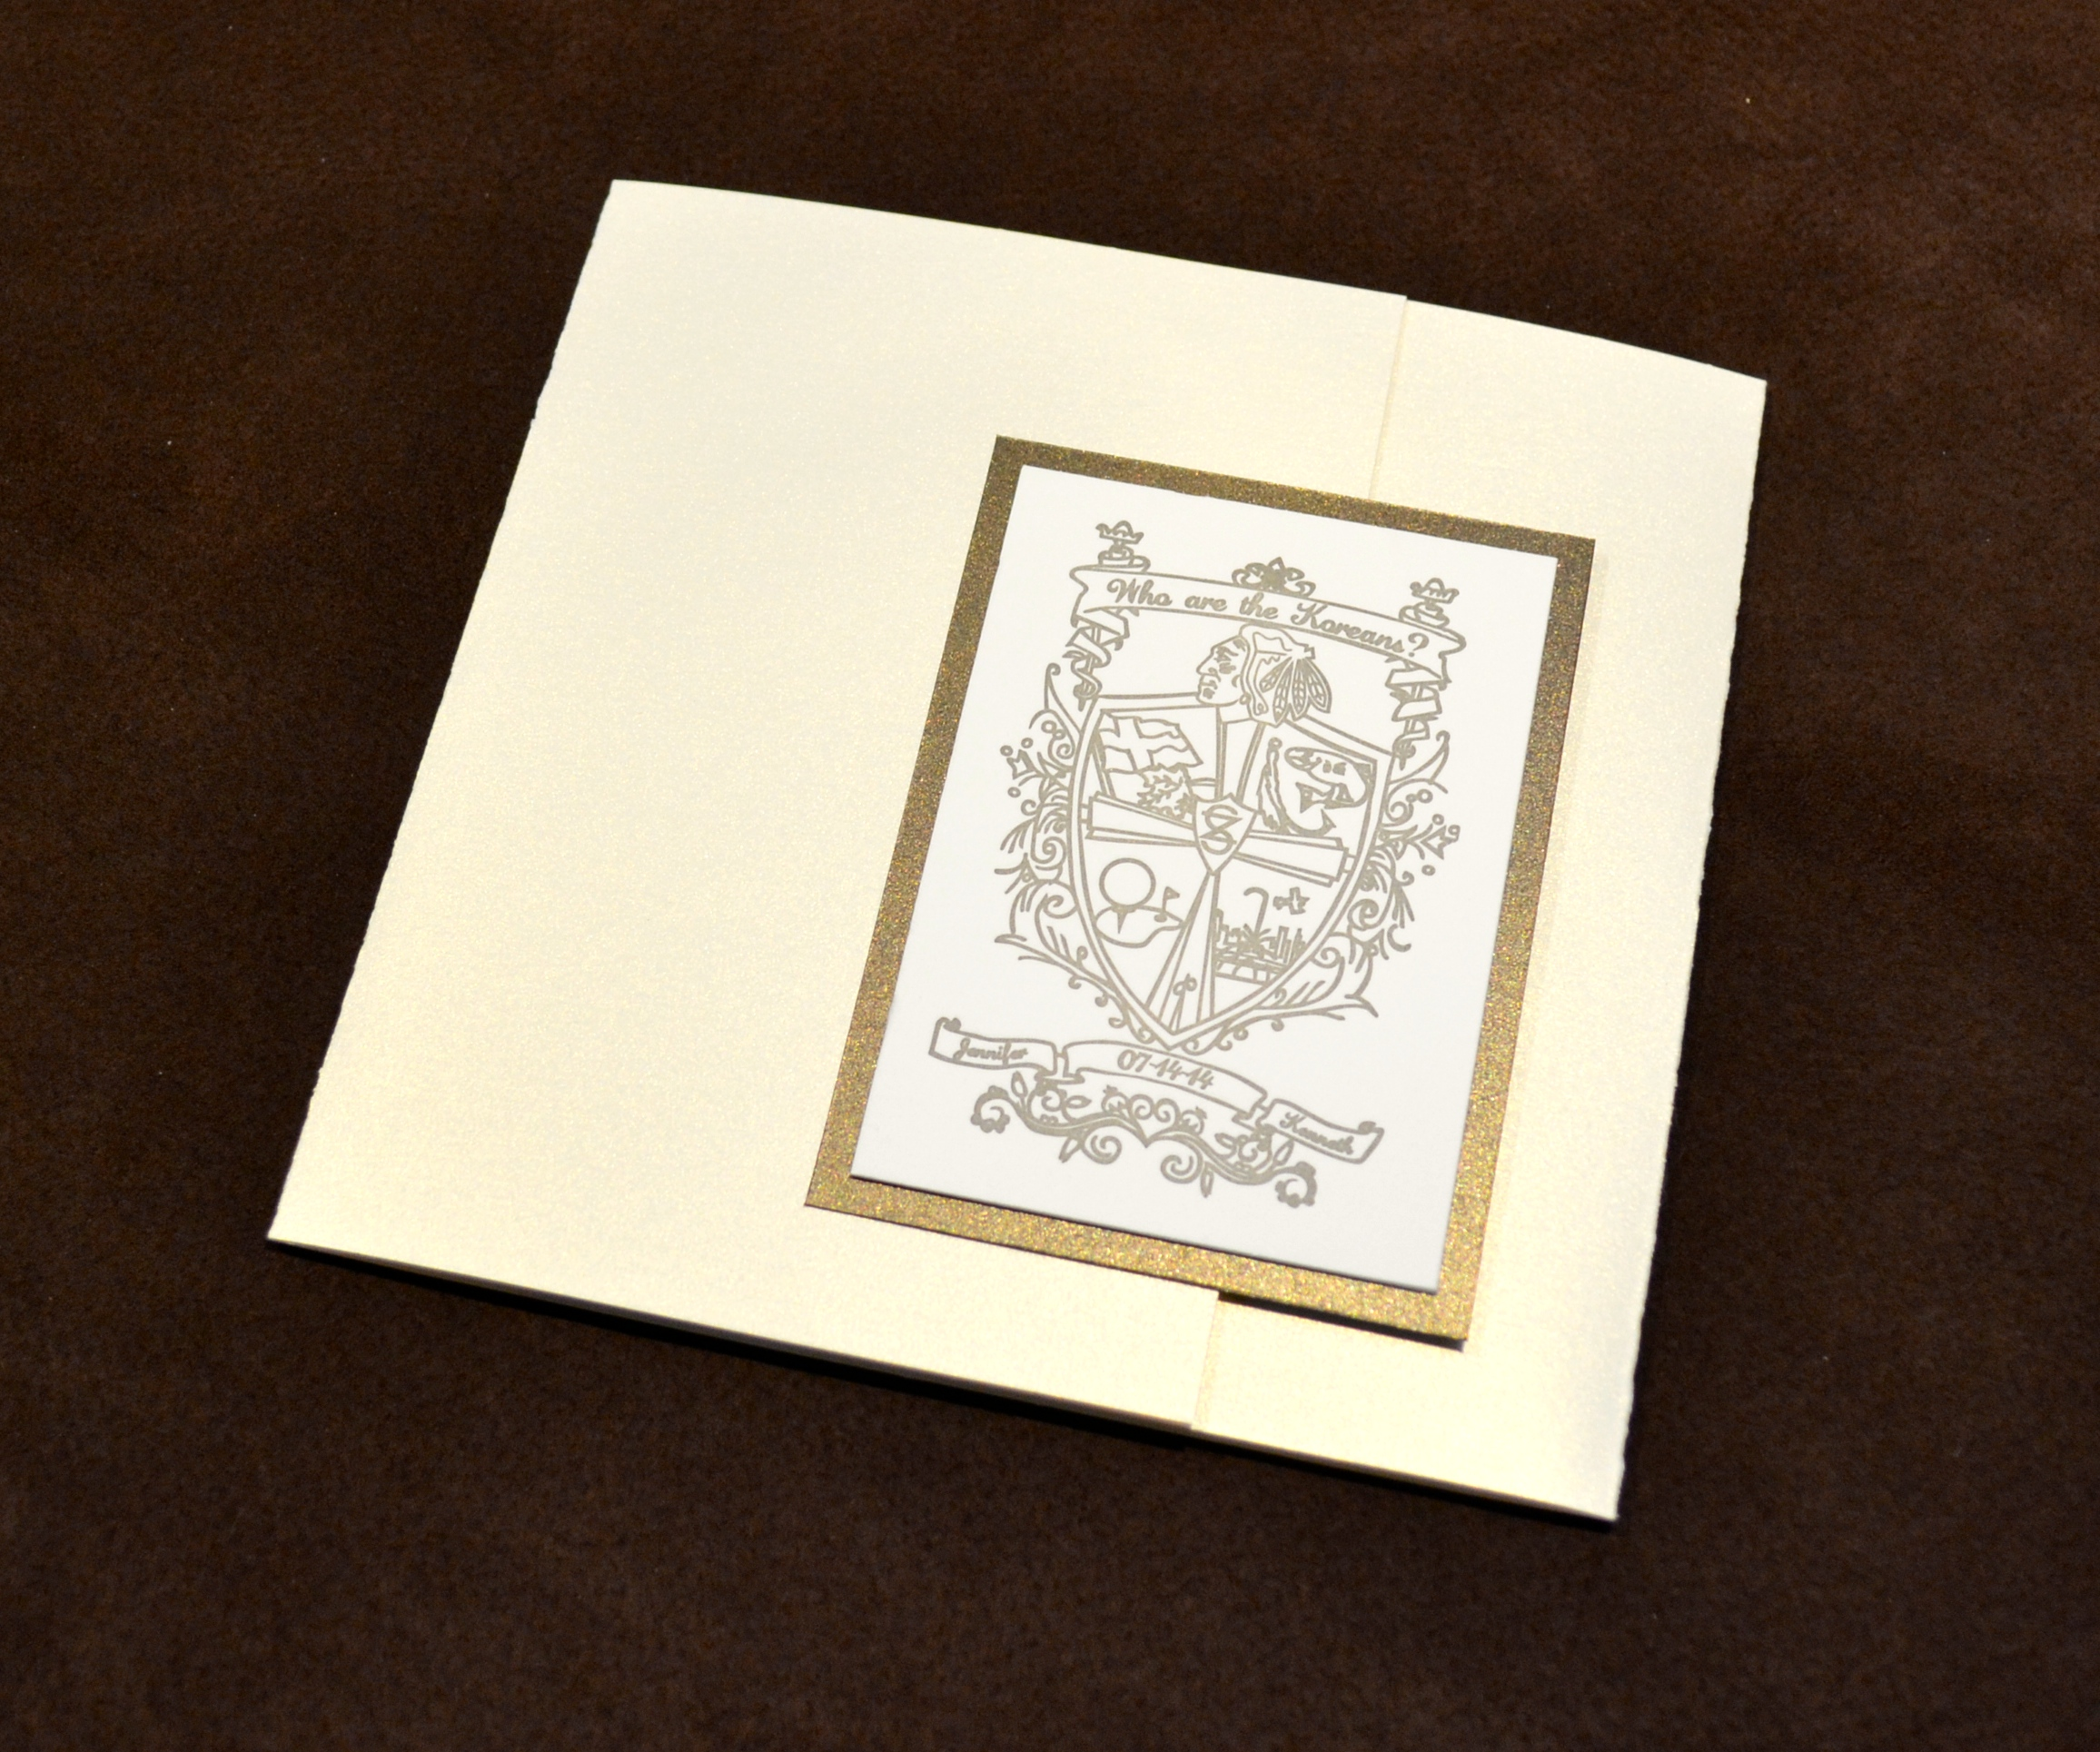 gatefold-wedding-invitation-with-letterpress-crest-design-by-lucky-invitations